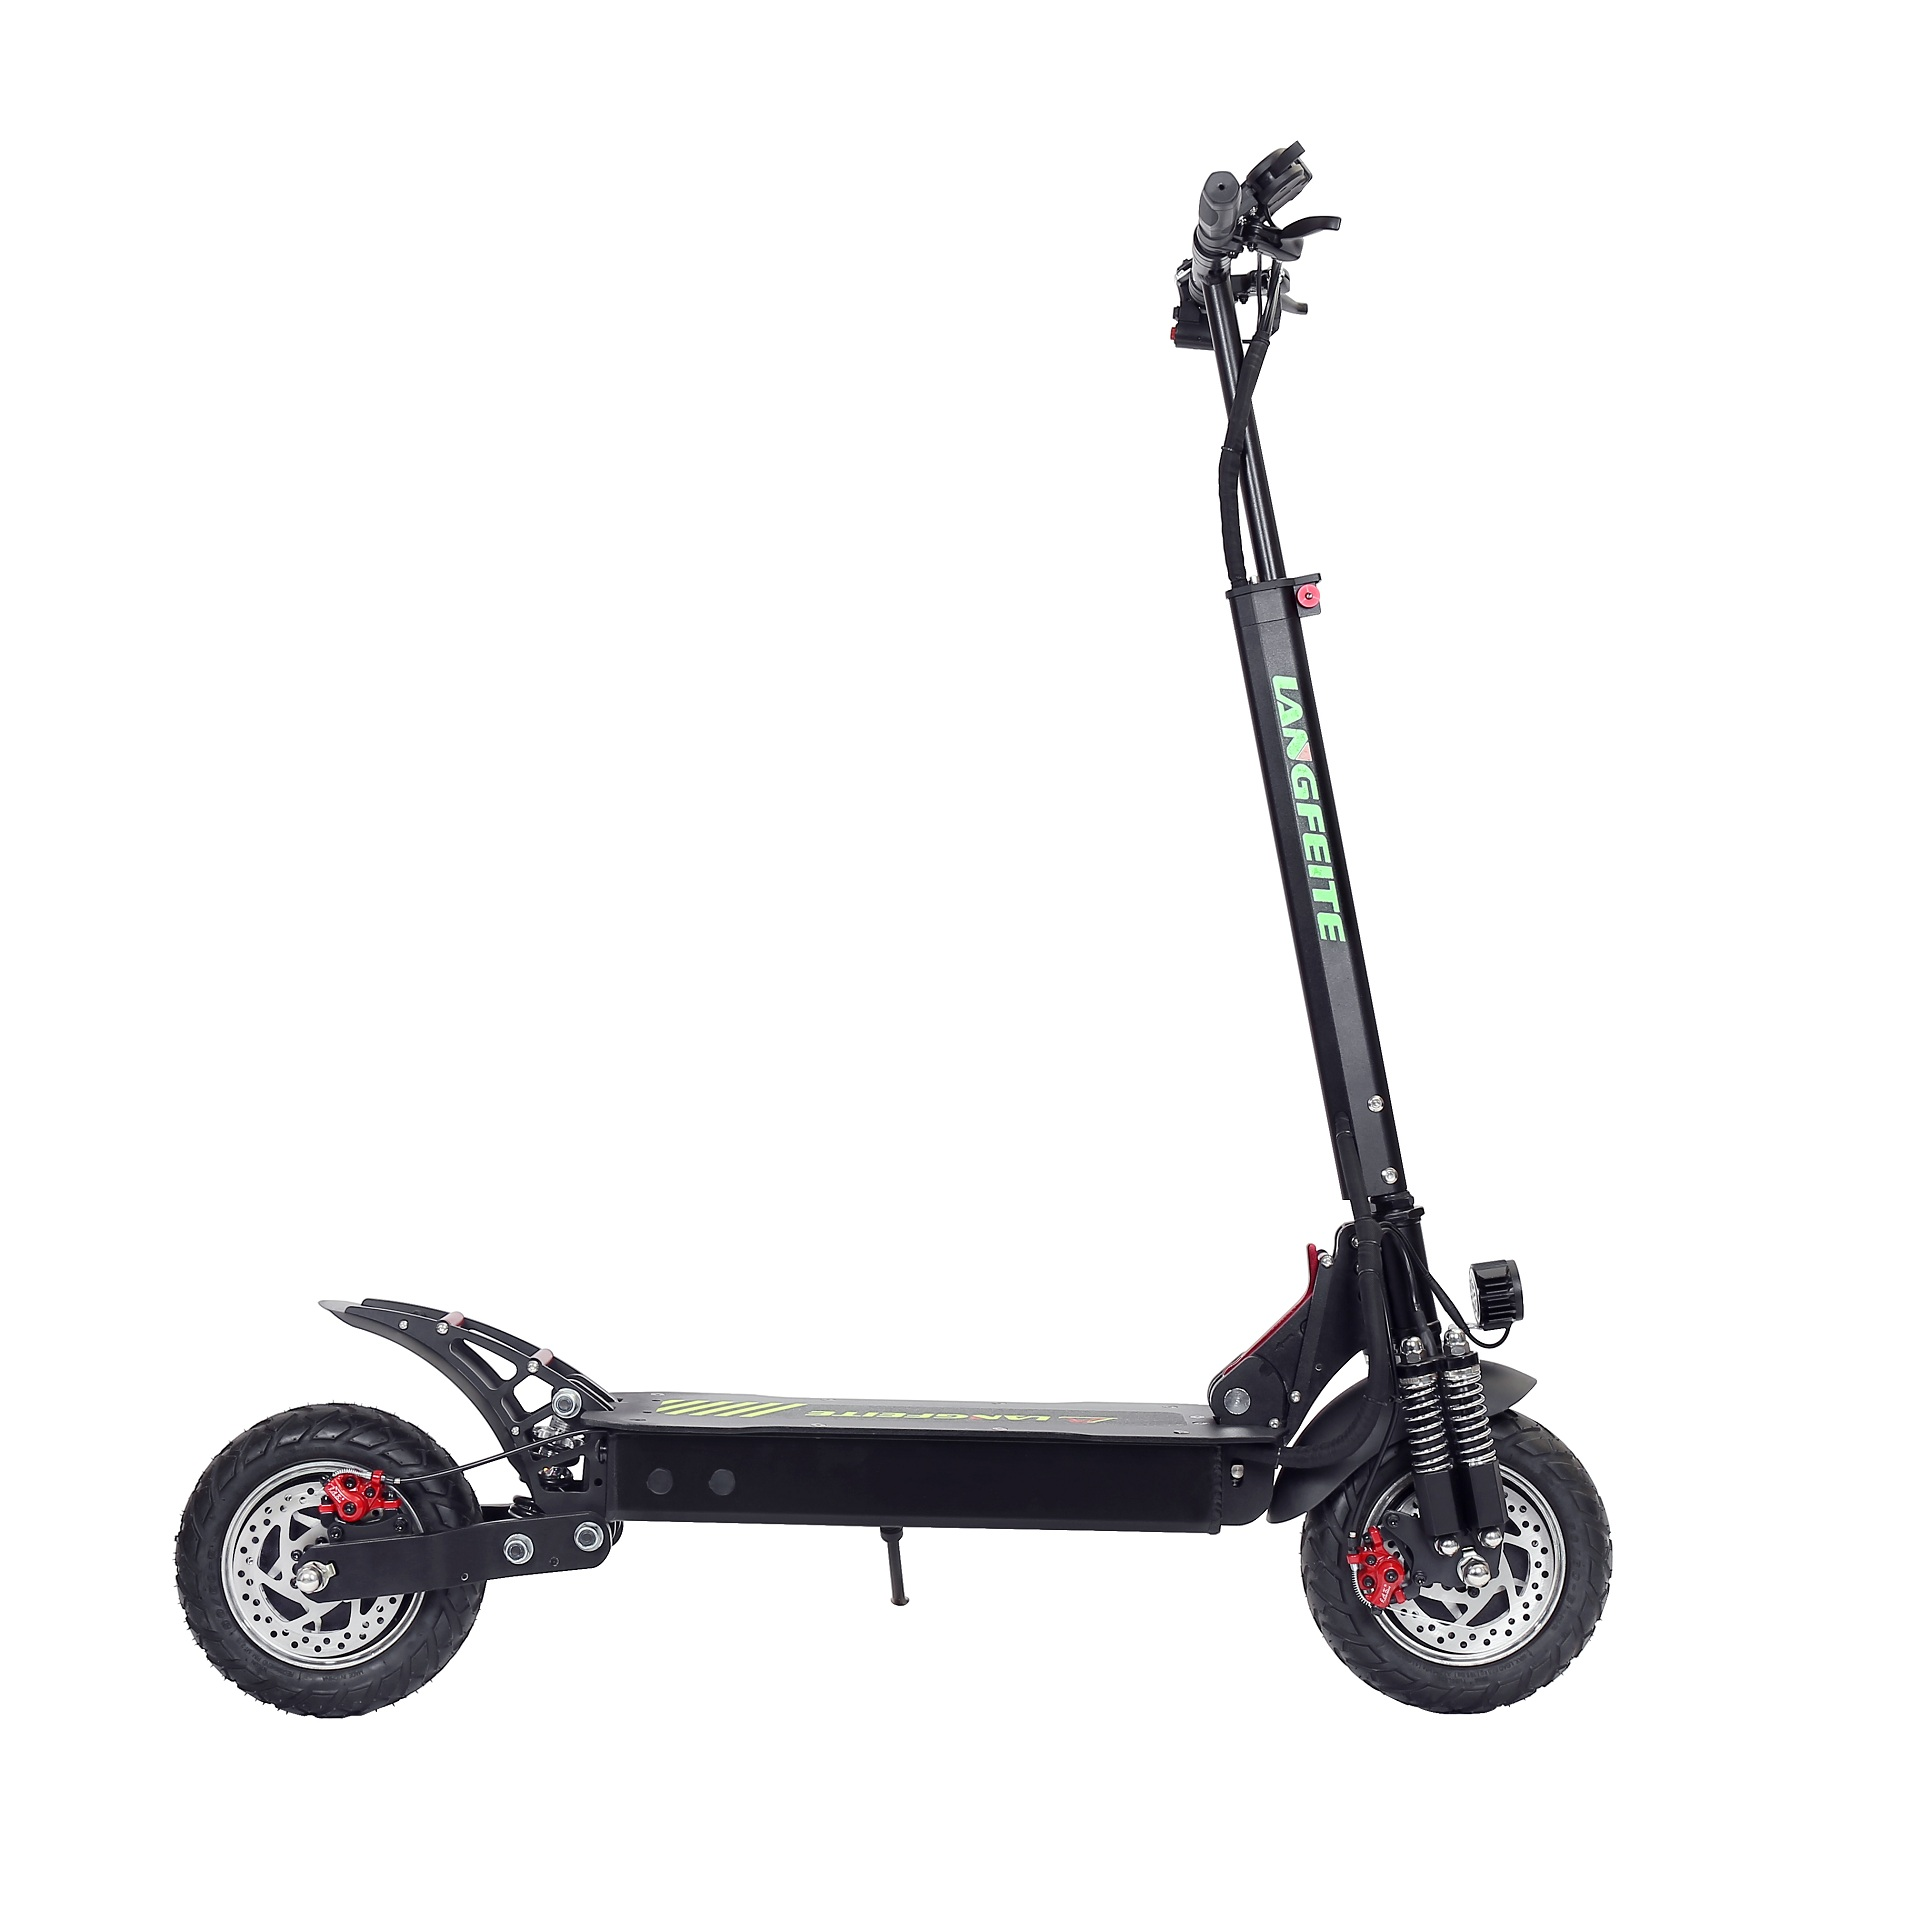 LANGFEITE L8S 2019 Version 20.8Ah 48V 800W*2 Dual Motor Folding Electric Scooter Color Display DC Brushless Motor 45km/h Top Speed 55km Range EU Plug